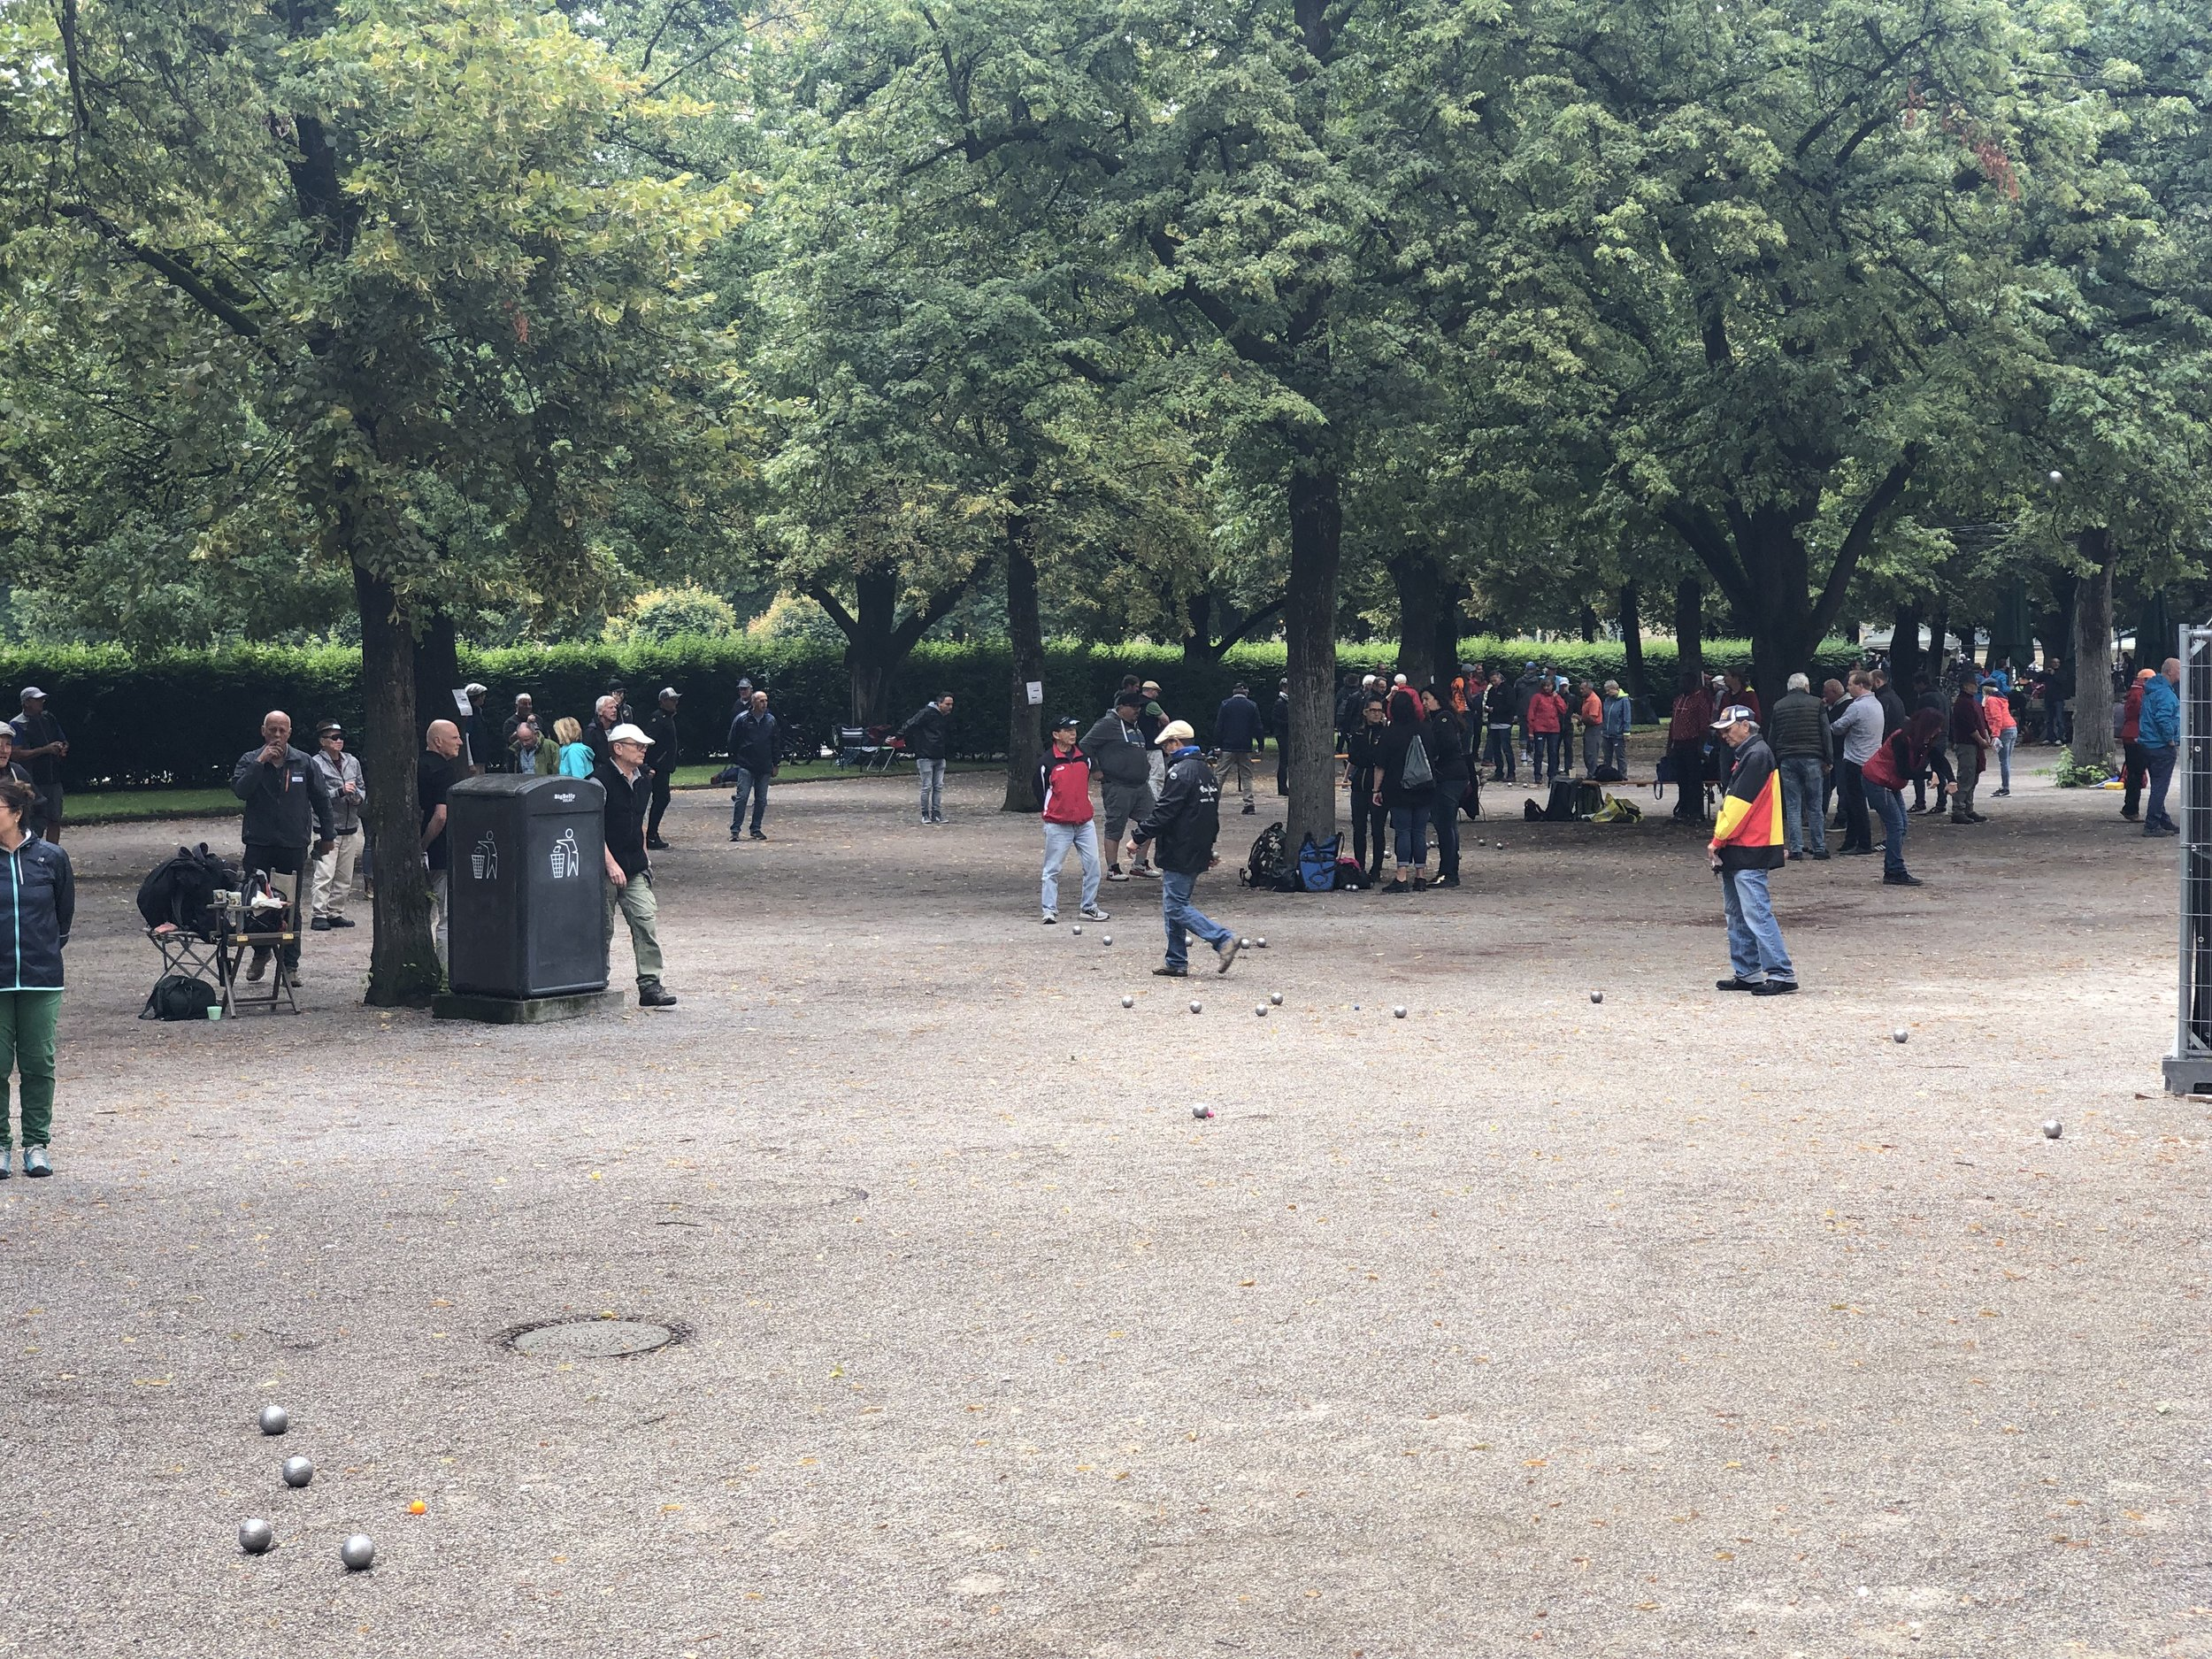 Germans love play a game called petanque, In this area of a city park in Munich there were at least 100 people playing petanque.